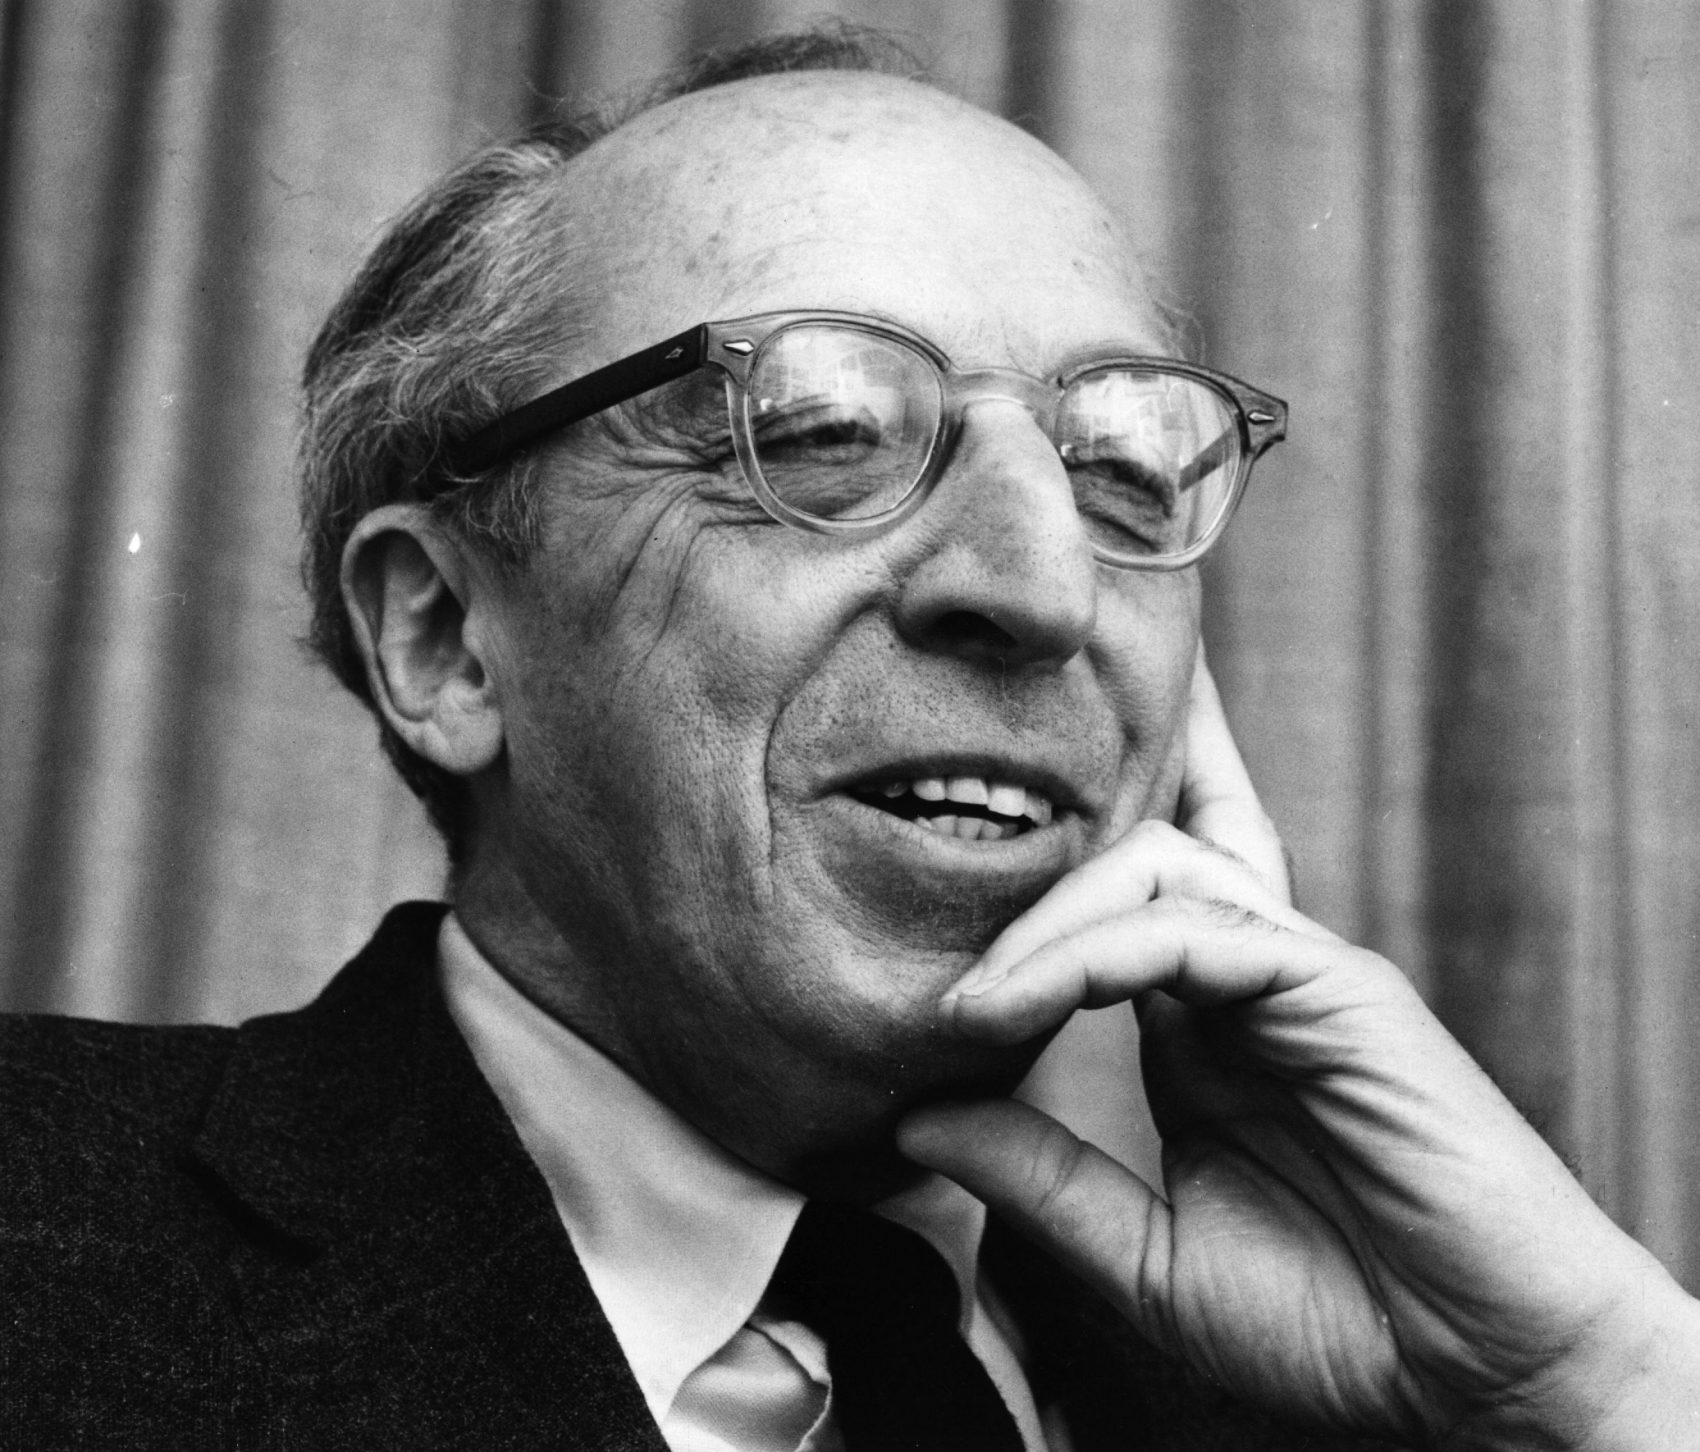 How We Listen by Aaron Copland